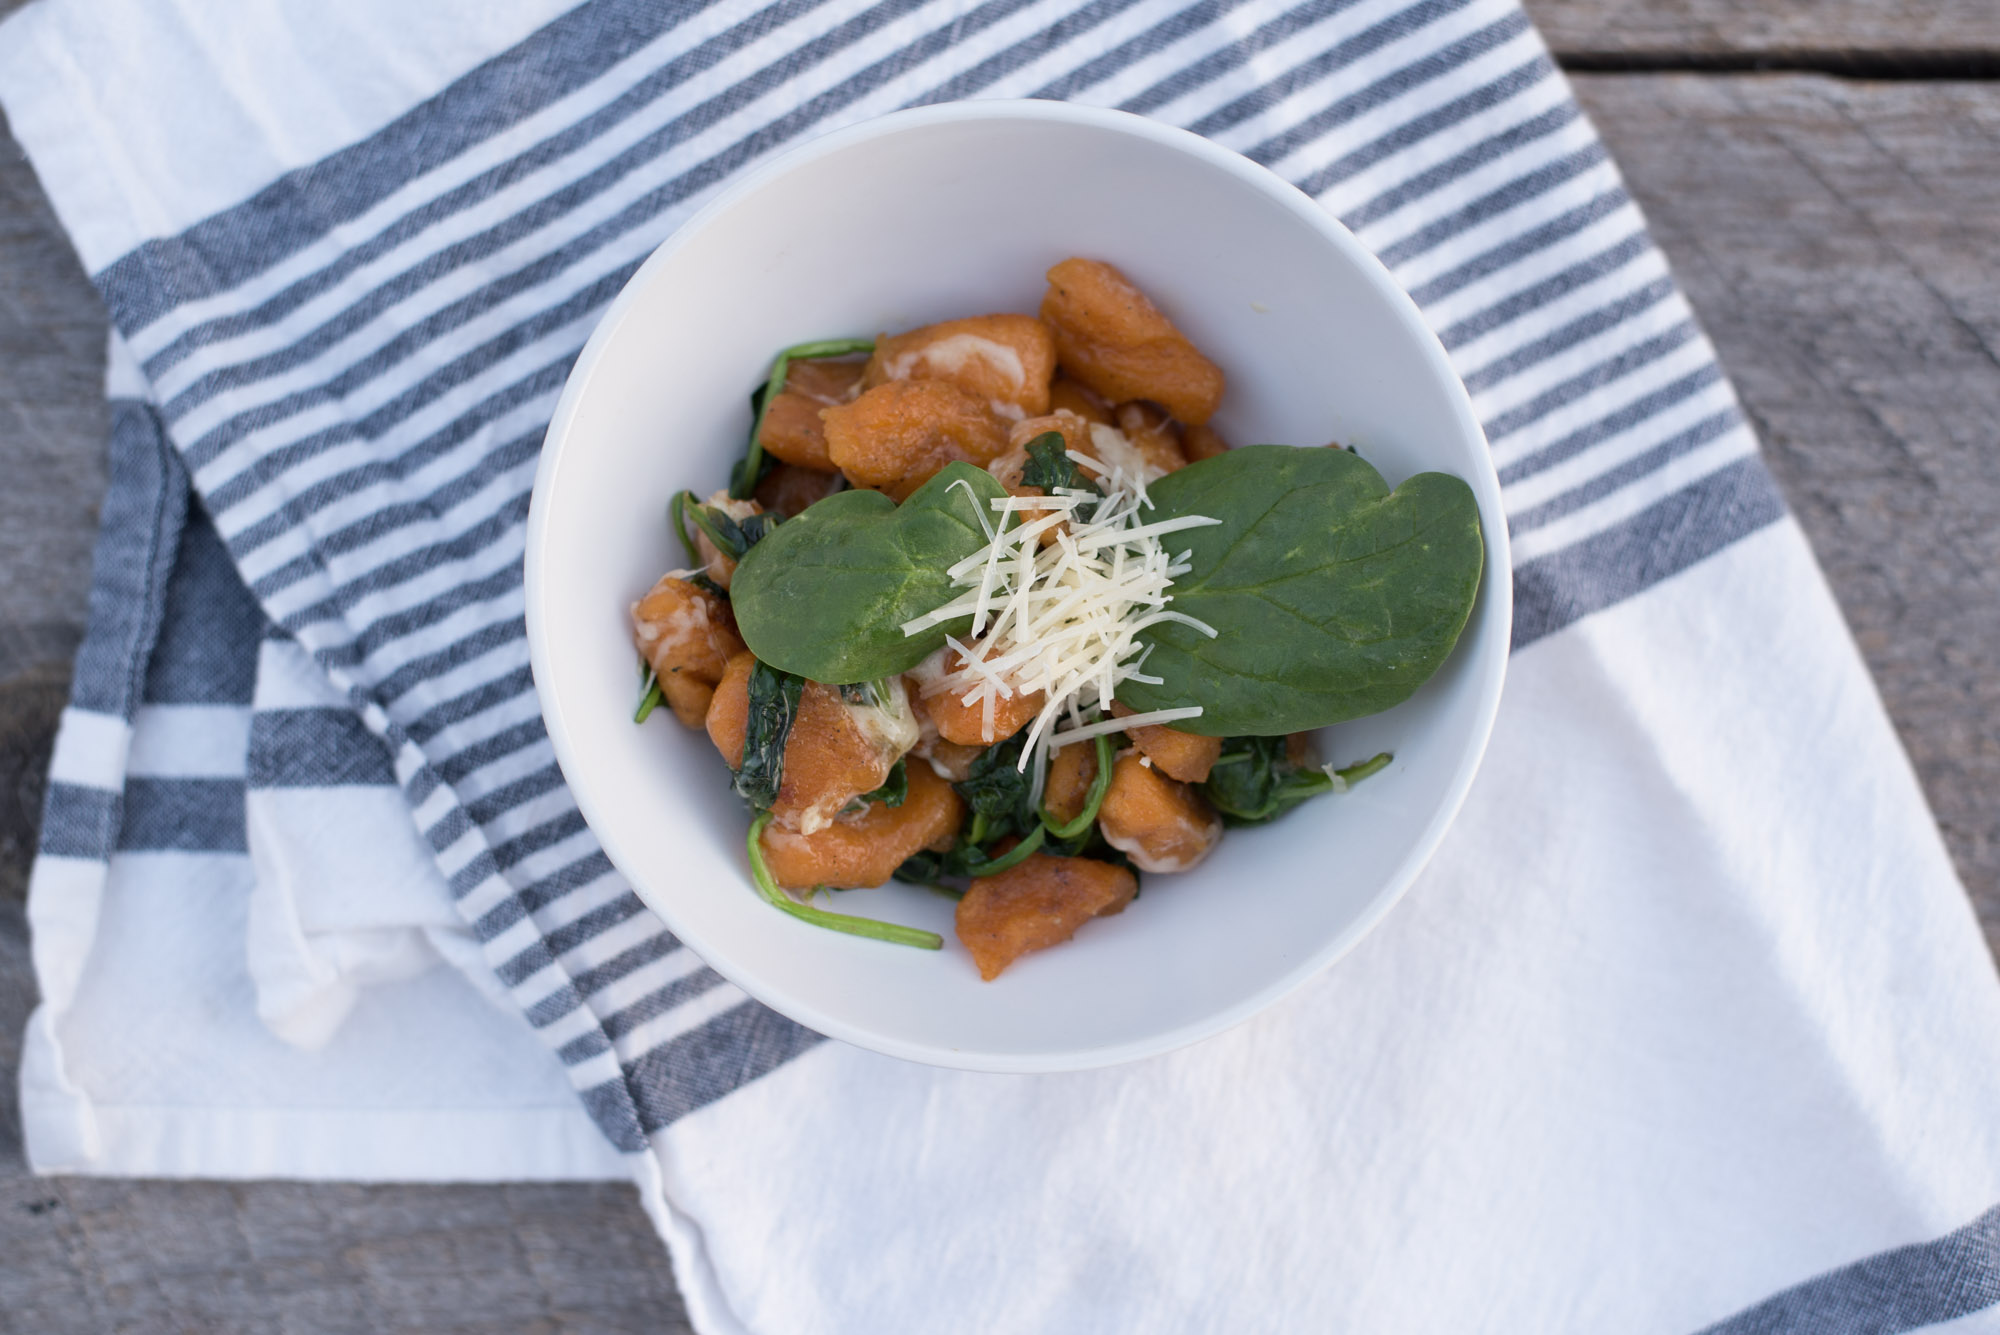 Delicious Paleo homemade Sweet Potato Gnocchi with a garlic butter spinach sauce